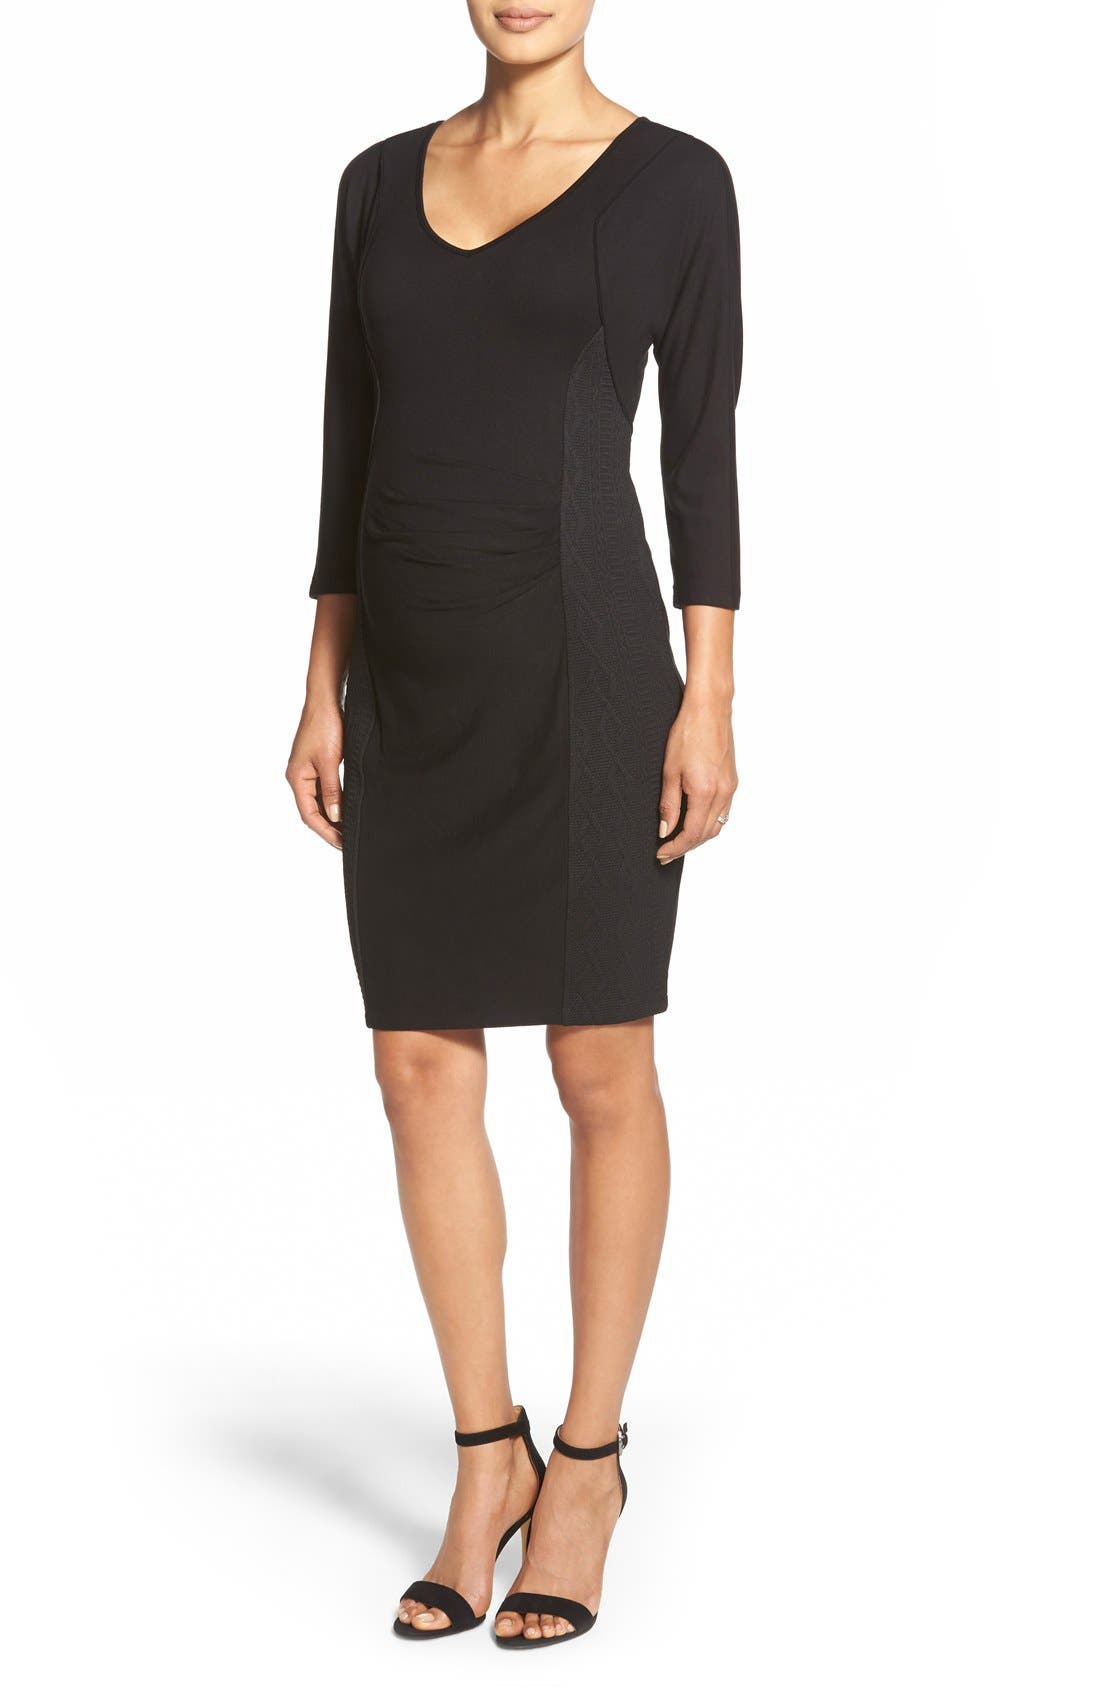 TART MATERNITY 'Telsa' Maternity Dress, Main, color, BLACK